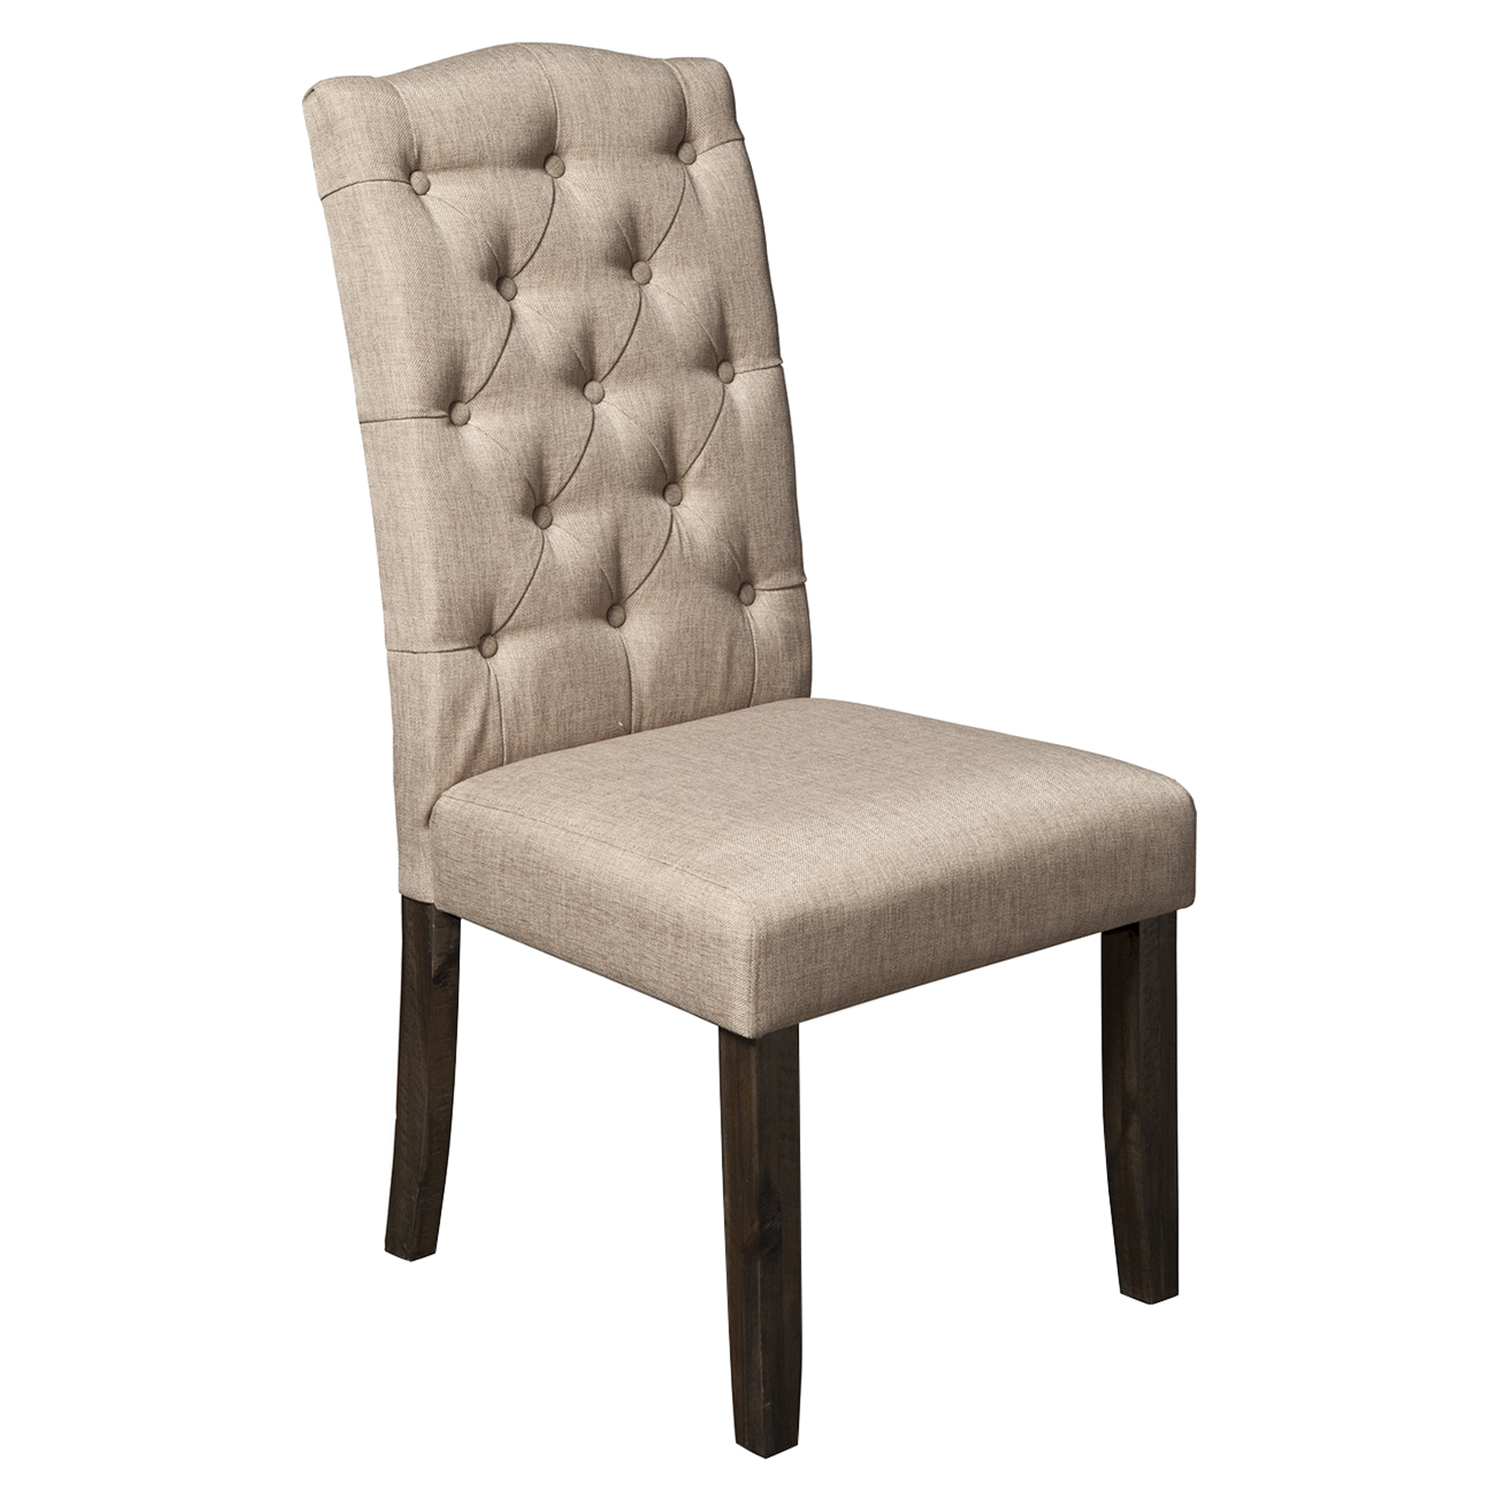 Newberry Parson Chair - Salvaged Gray, Button Tufted (Set of 2)